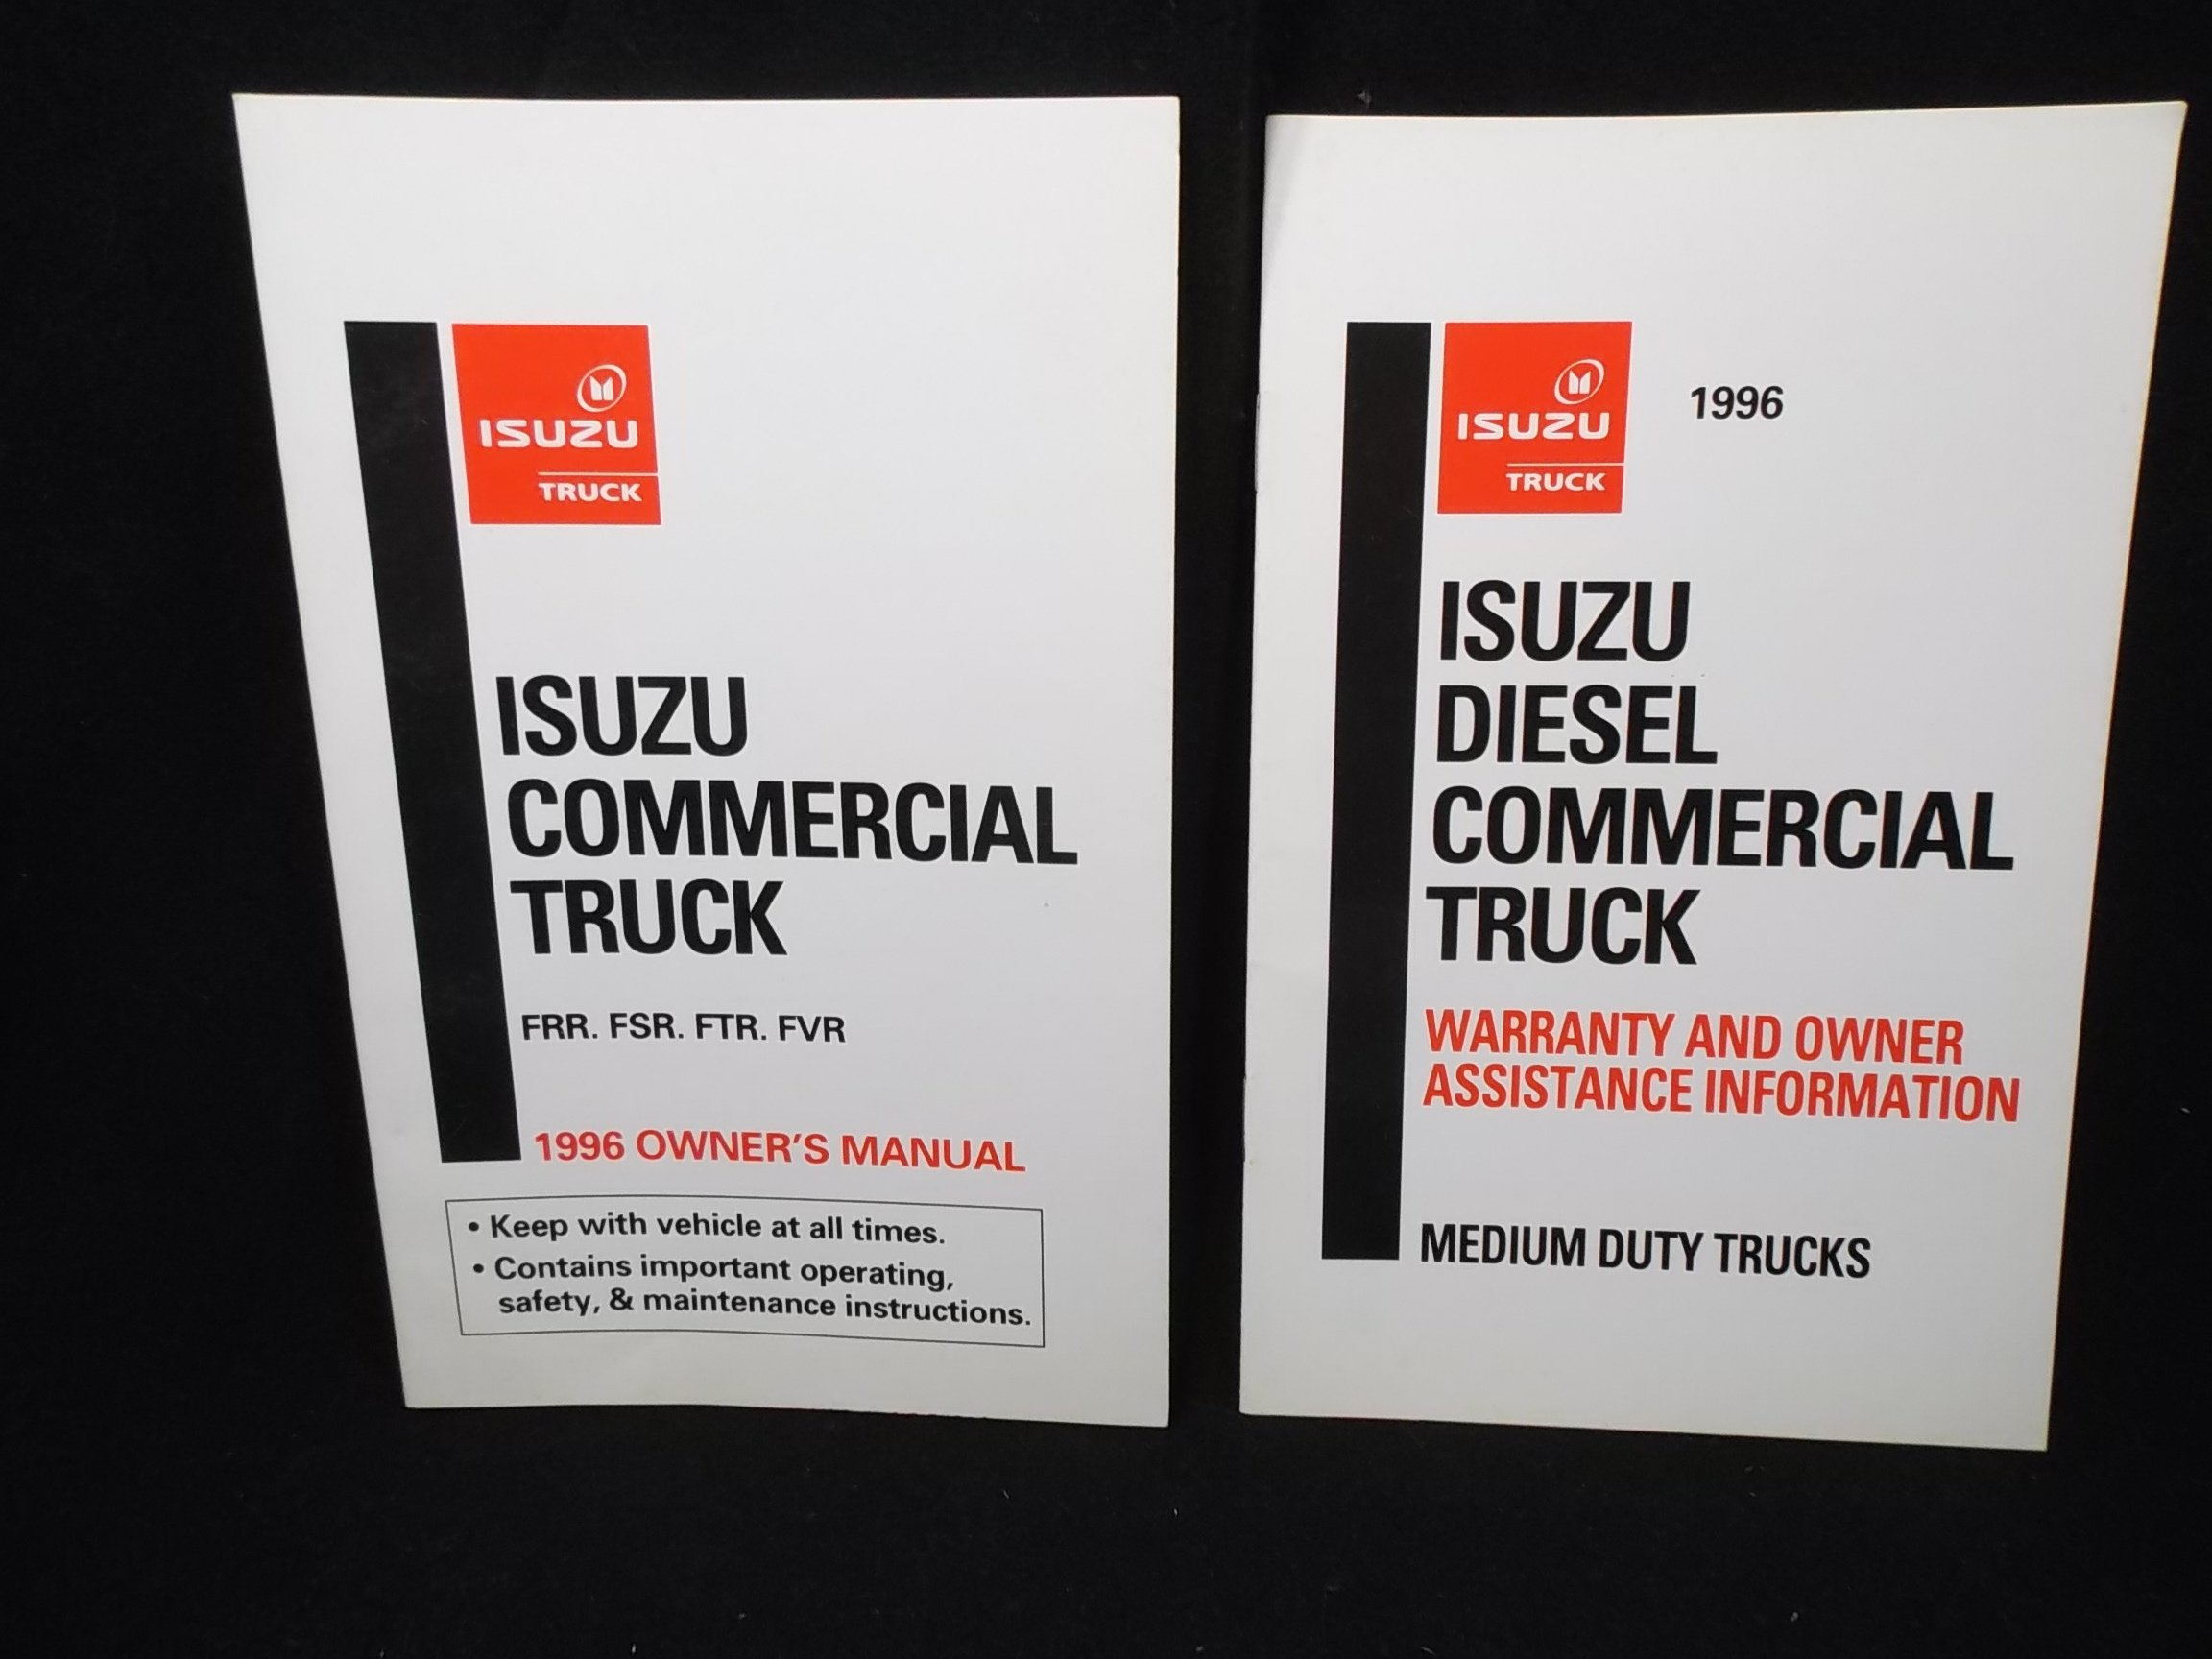 Isuzu ftr service manual array isuzu fsr ftr fvr frr 1996 commercial truck owners manual isuzu rh amazon com fandeluxe Images